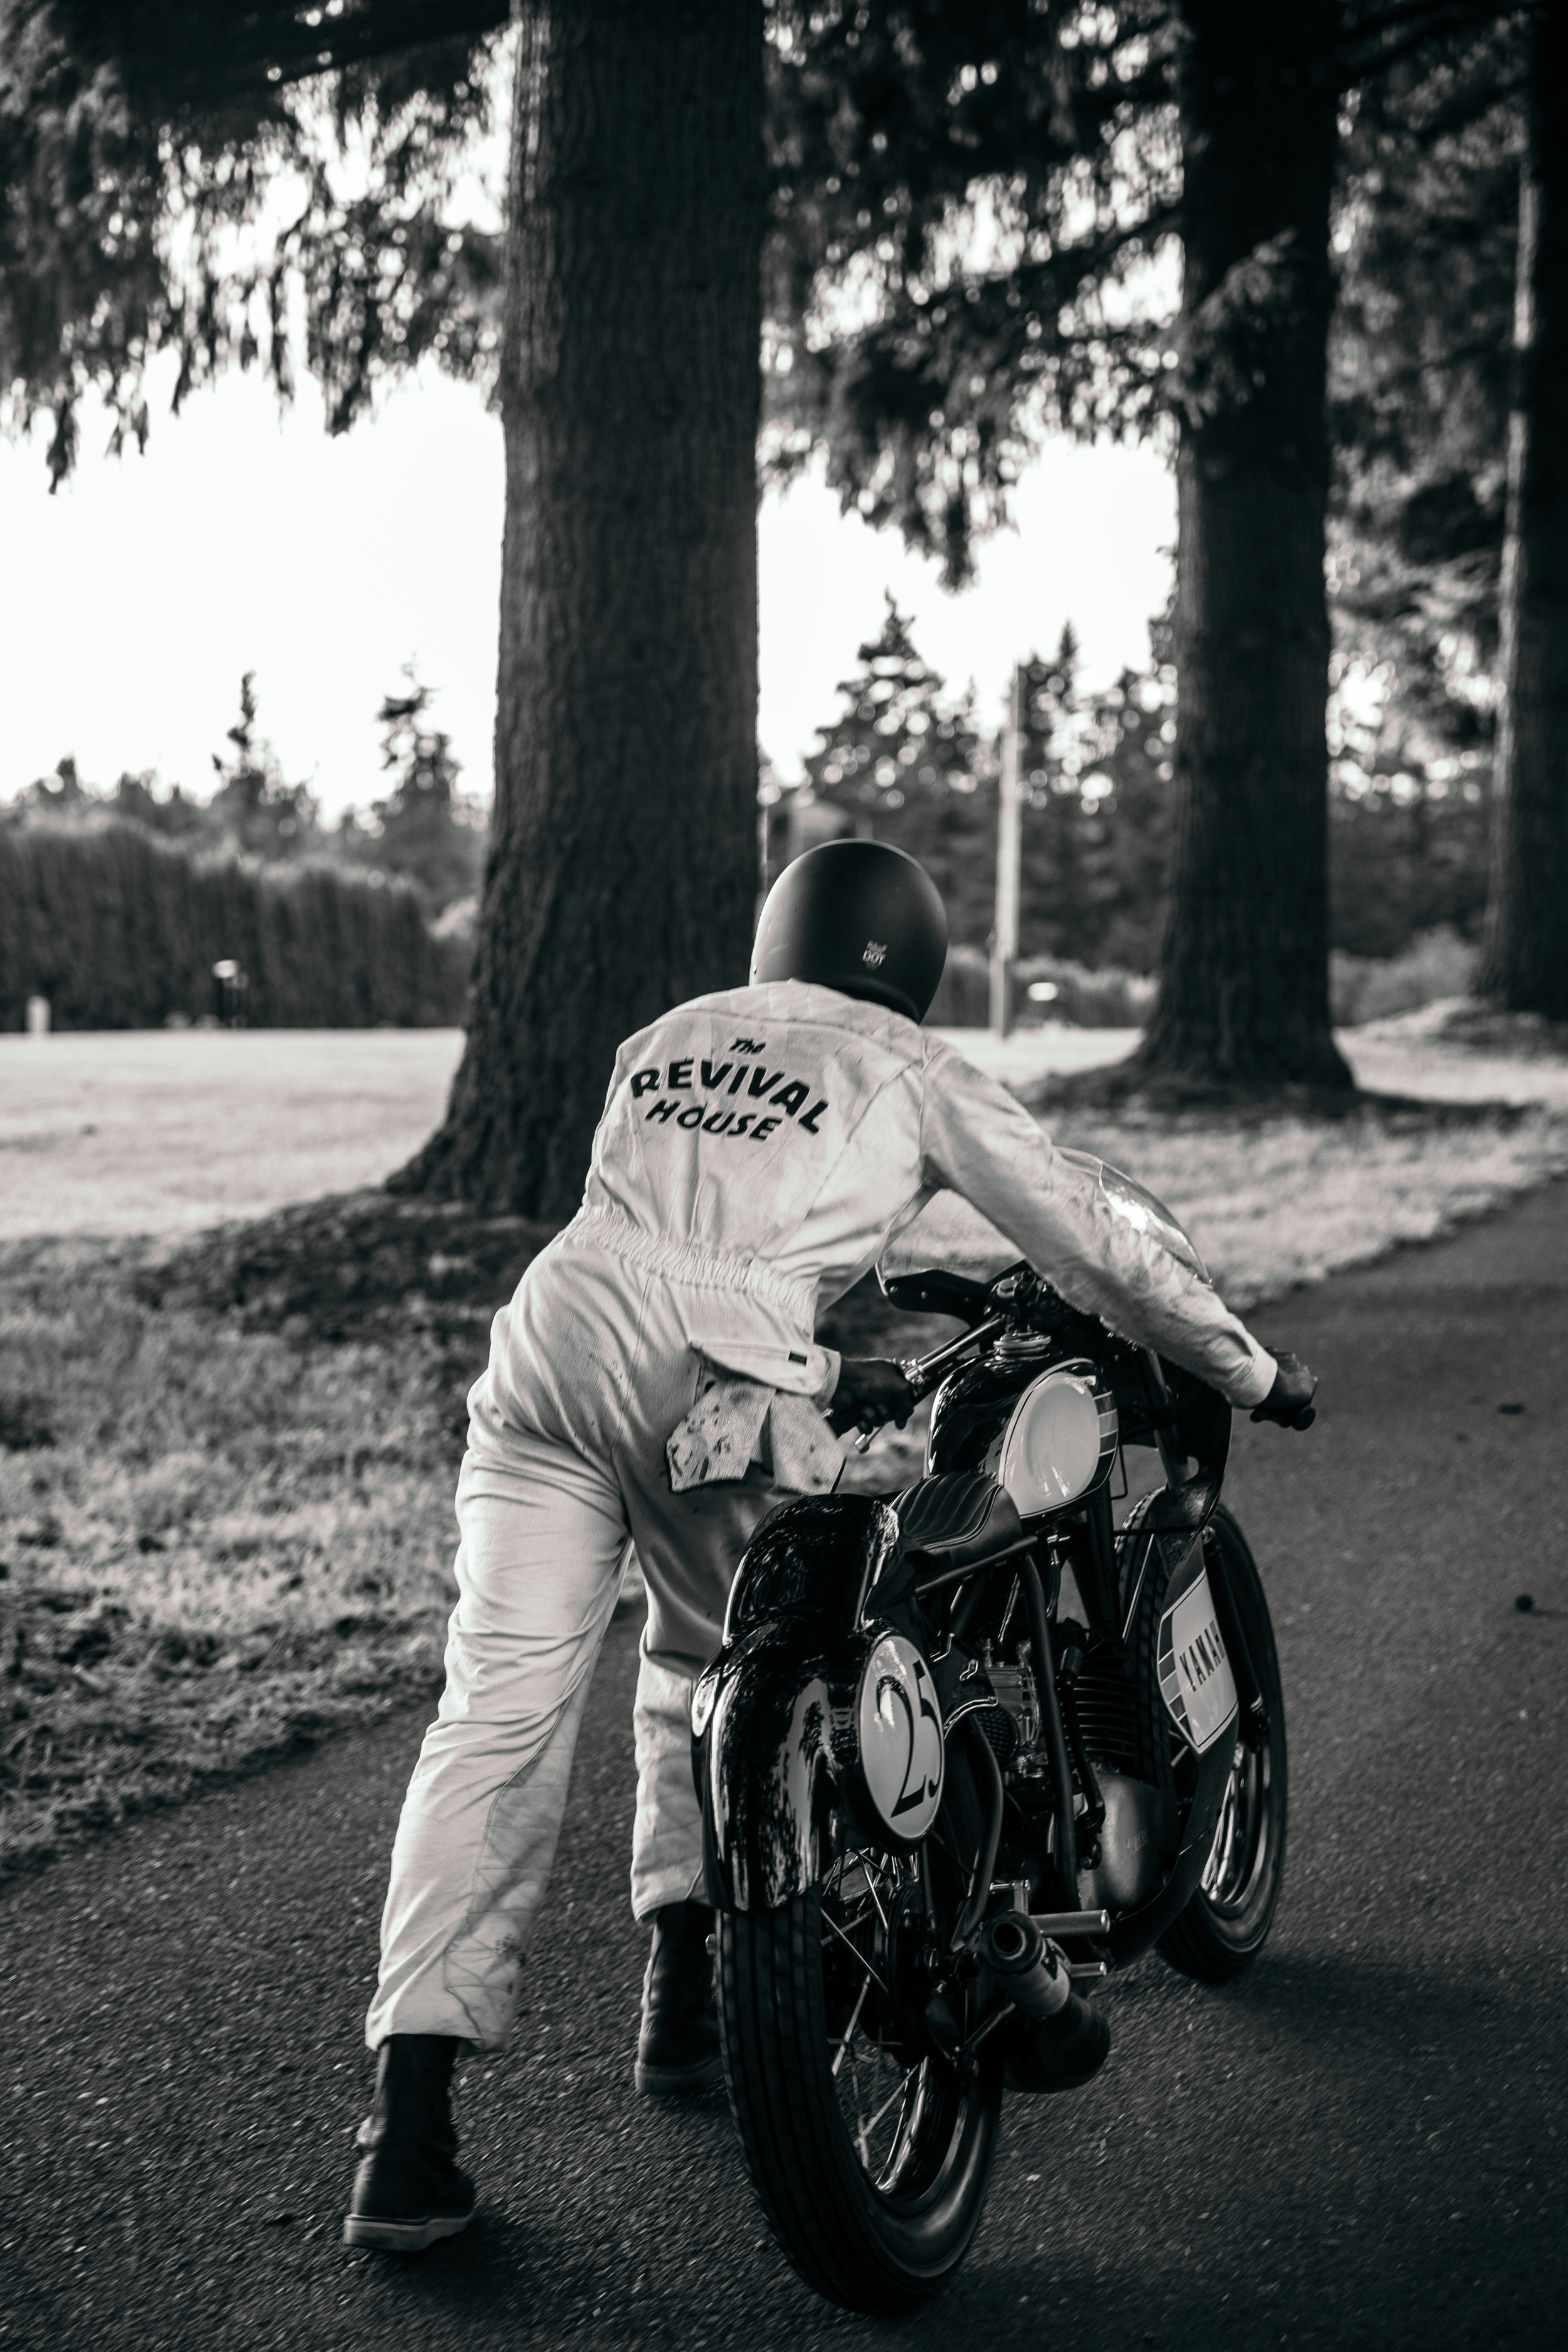 Coming Soon....                                                                                                    Suit:  (Crawford Denim and Vintage)   In the meantime check out  Return of the Cafe Racers